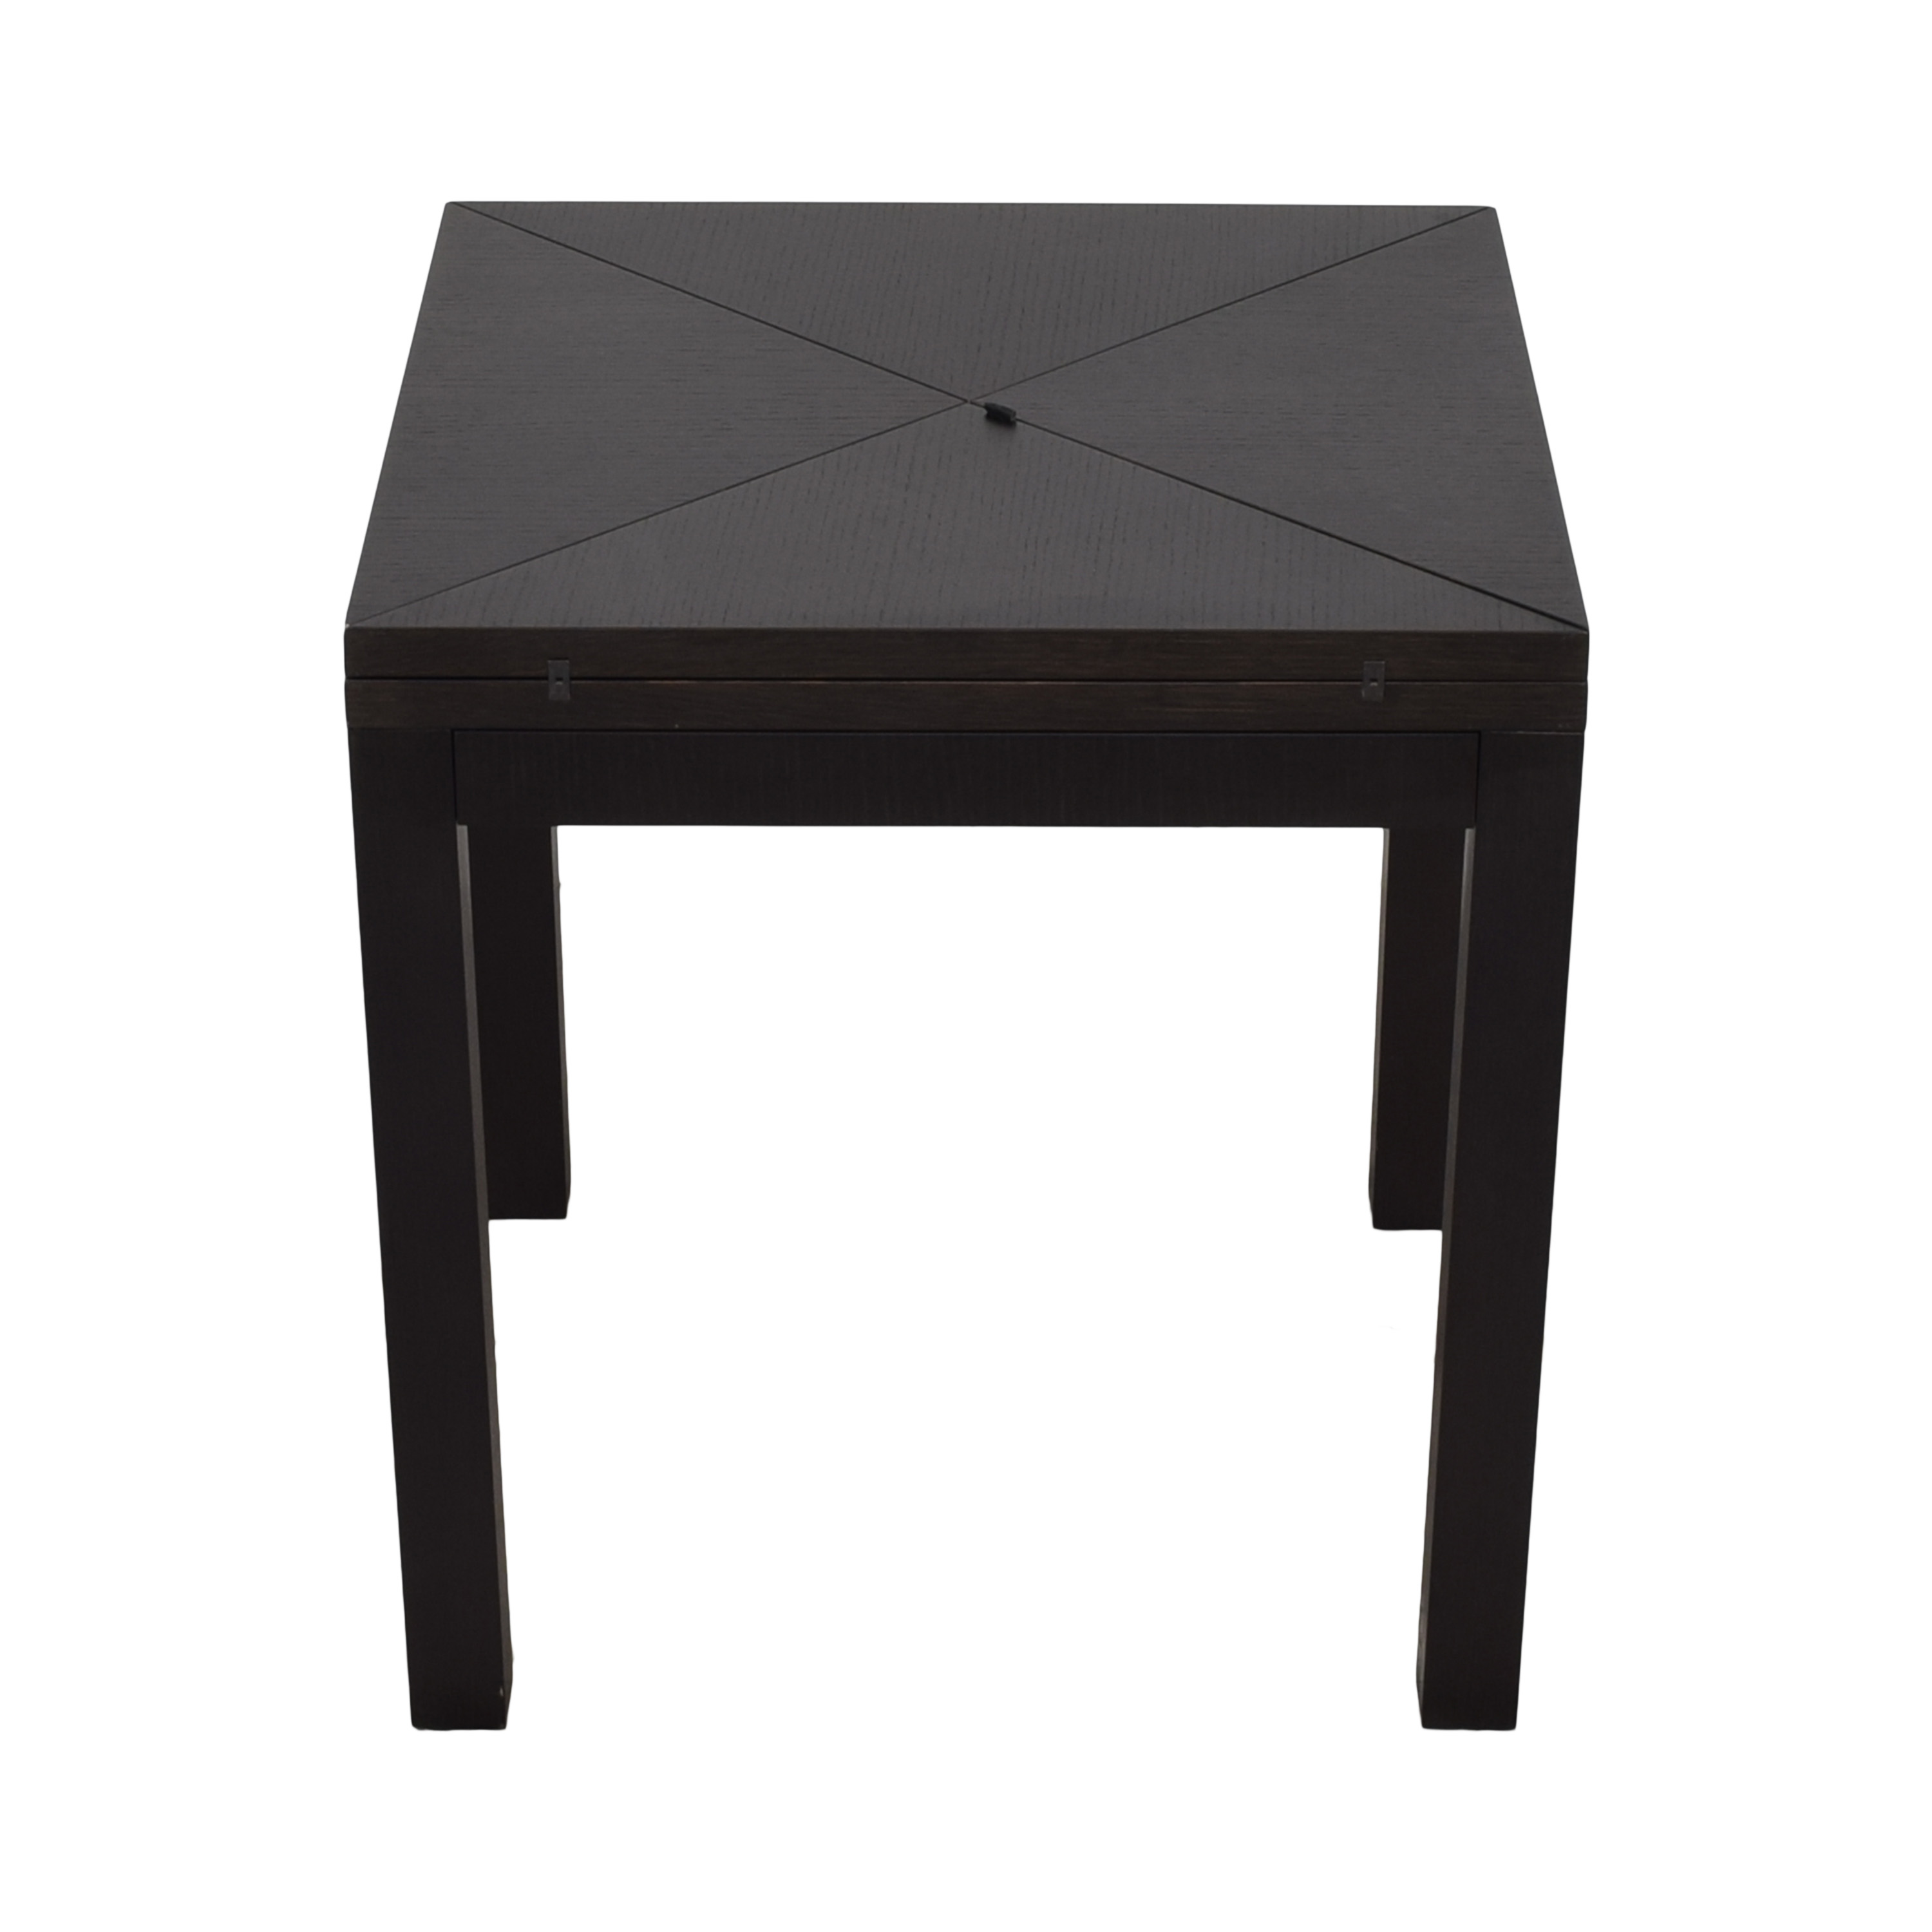 Armani Casa Armani Casa Dado Card Table used